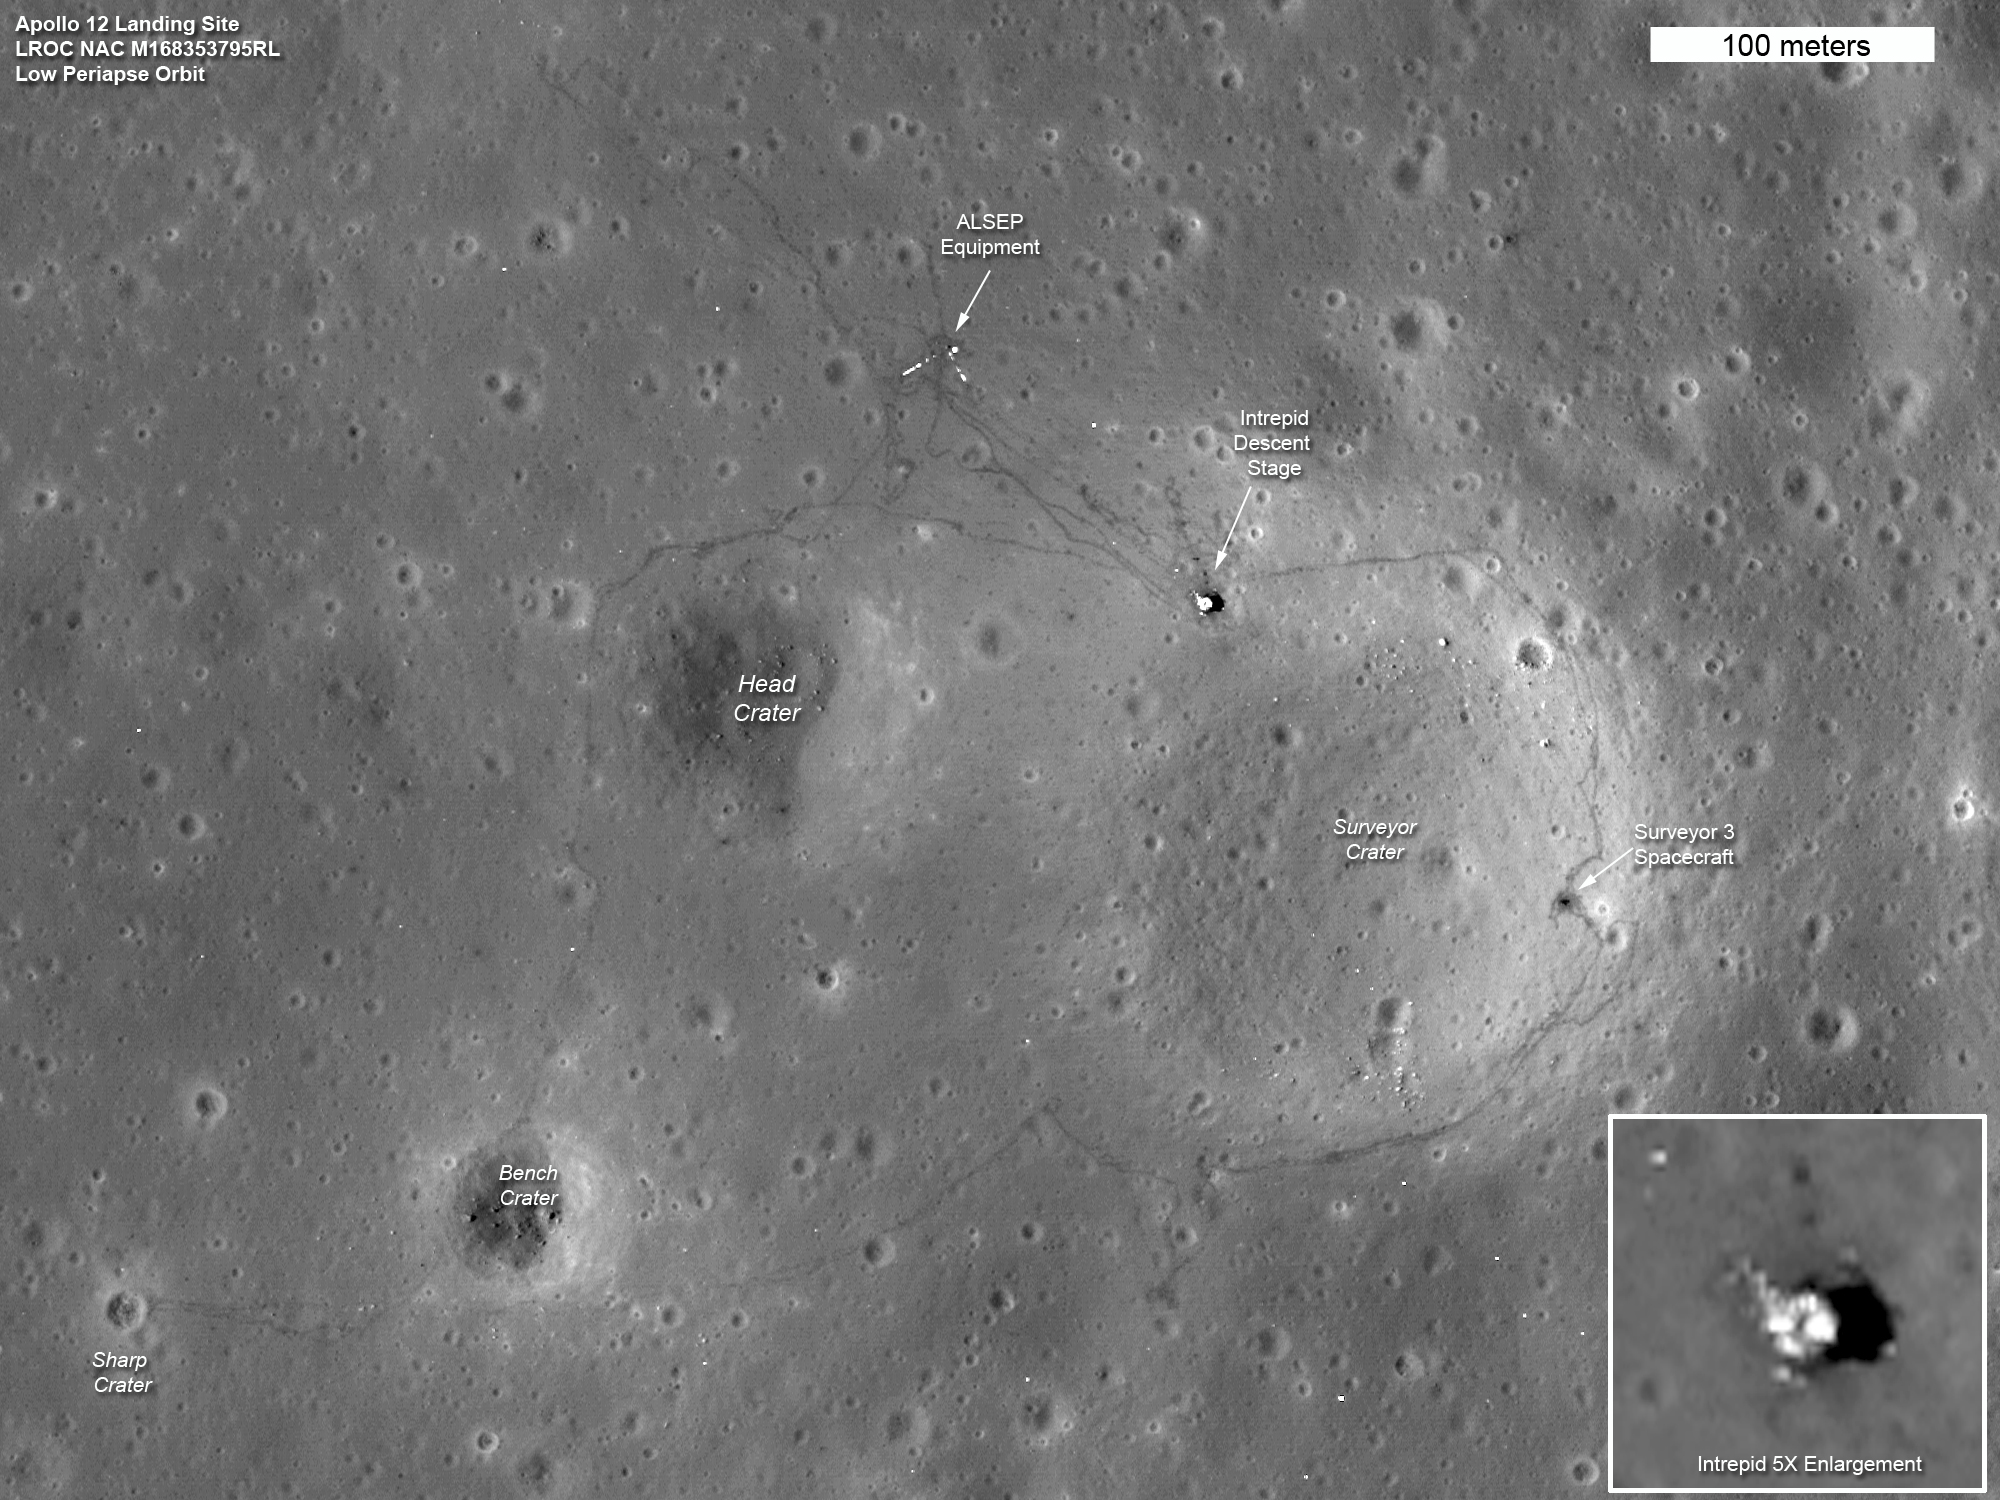 2011 Lunar Reconnaissance Orbiter photograph of the Apollo 12 landing site including the astronauts' tracks from two moonwalks